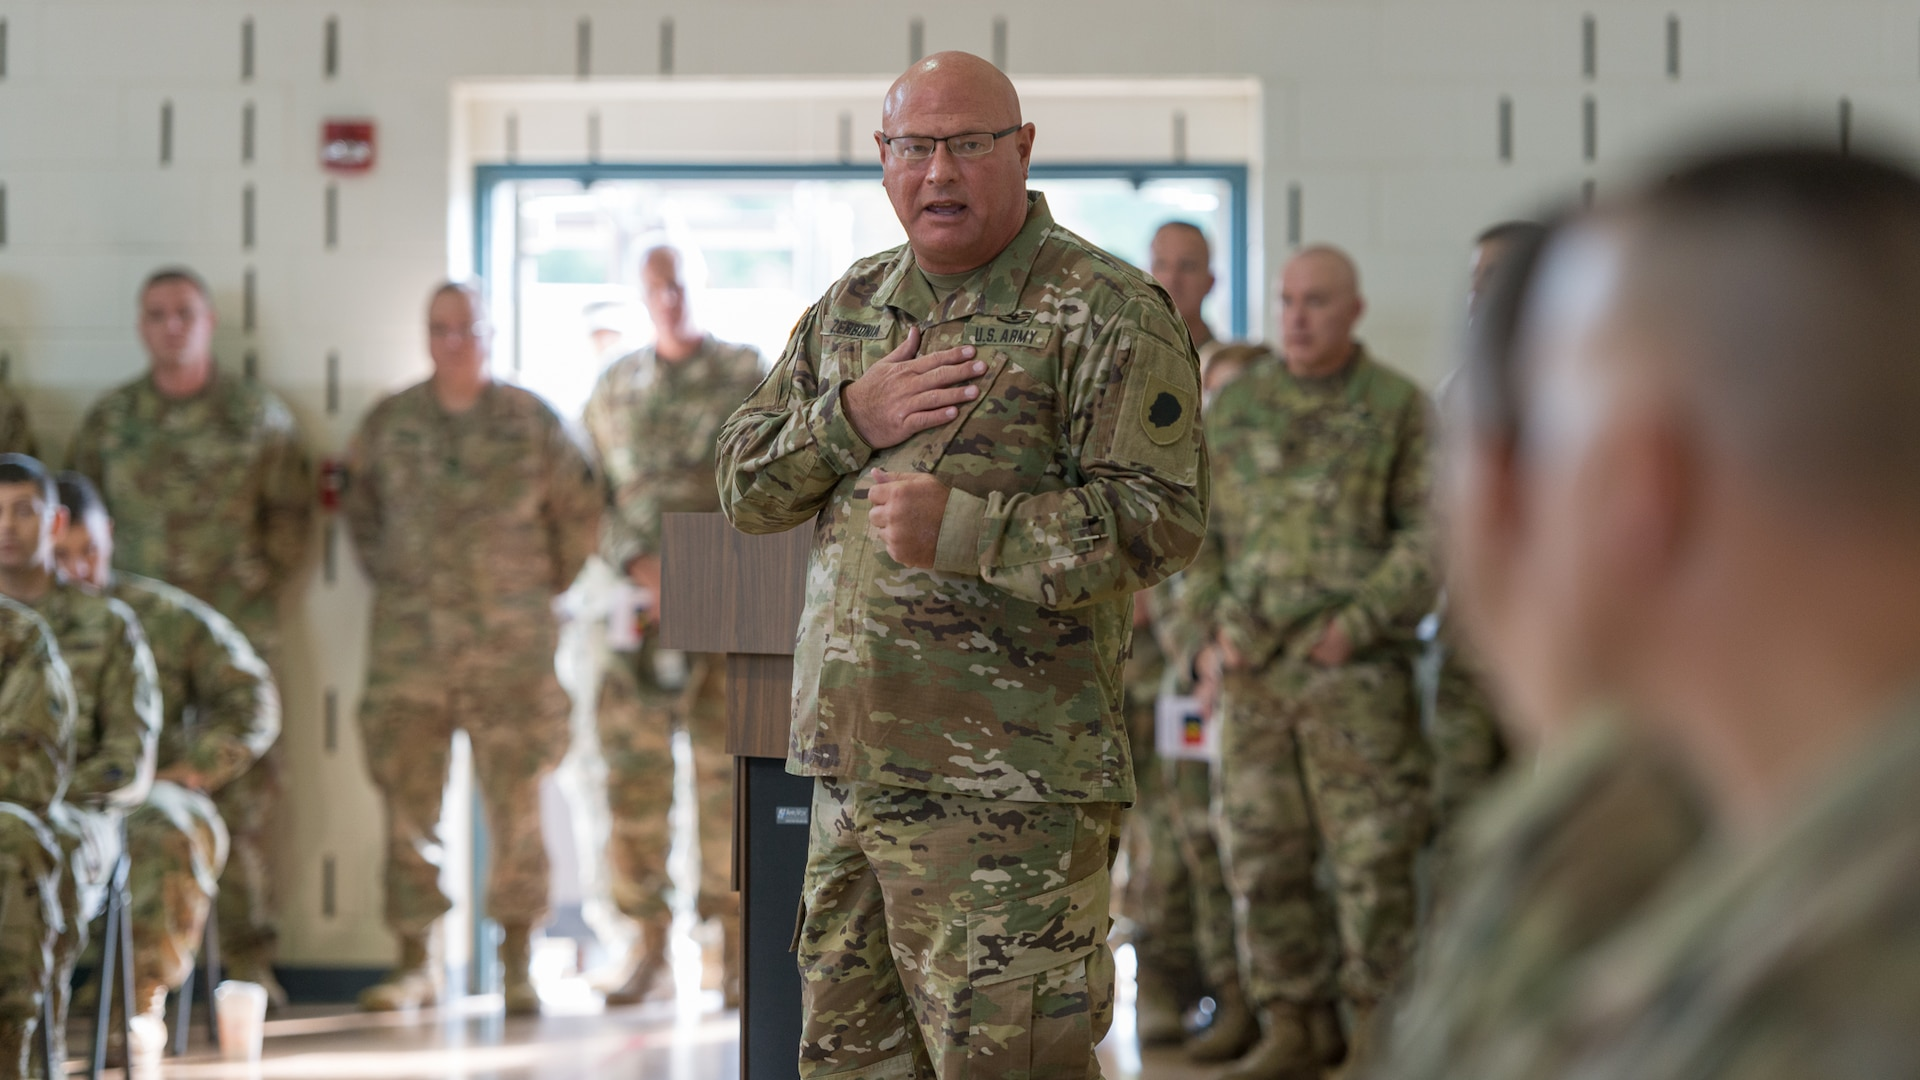 Major General Michael Zerbonia, Assistant Adjutant General – Army of the Illinois National Guard and Commander of the Illinois Army National Guard addresses assembled guests at the 33rd Infantry Brigade Combat Team change of command in 2017. Zerbonia, who has served in the U.S. Army and Illinois Army National Guard for nearly 40 years, will retire at the end of July.